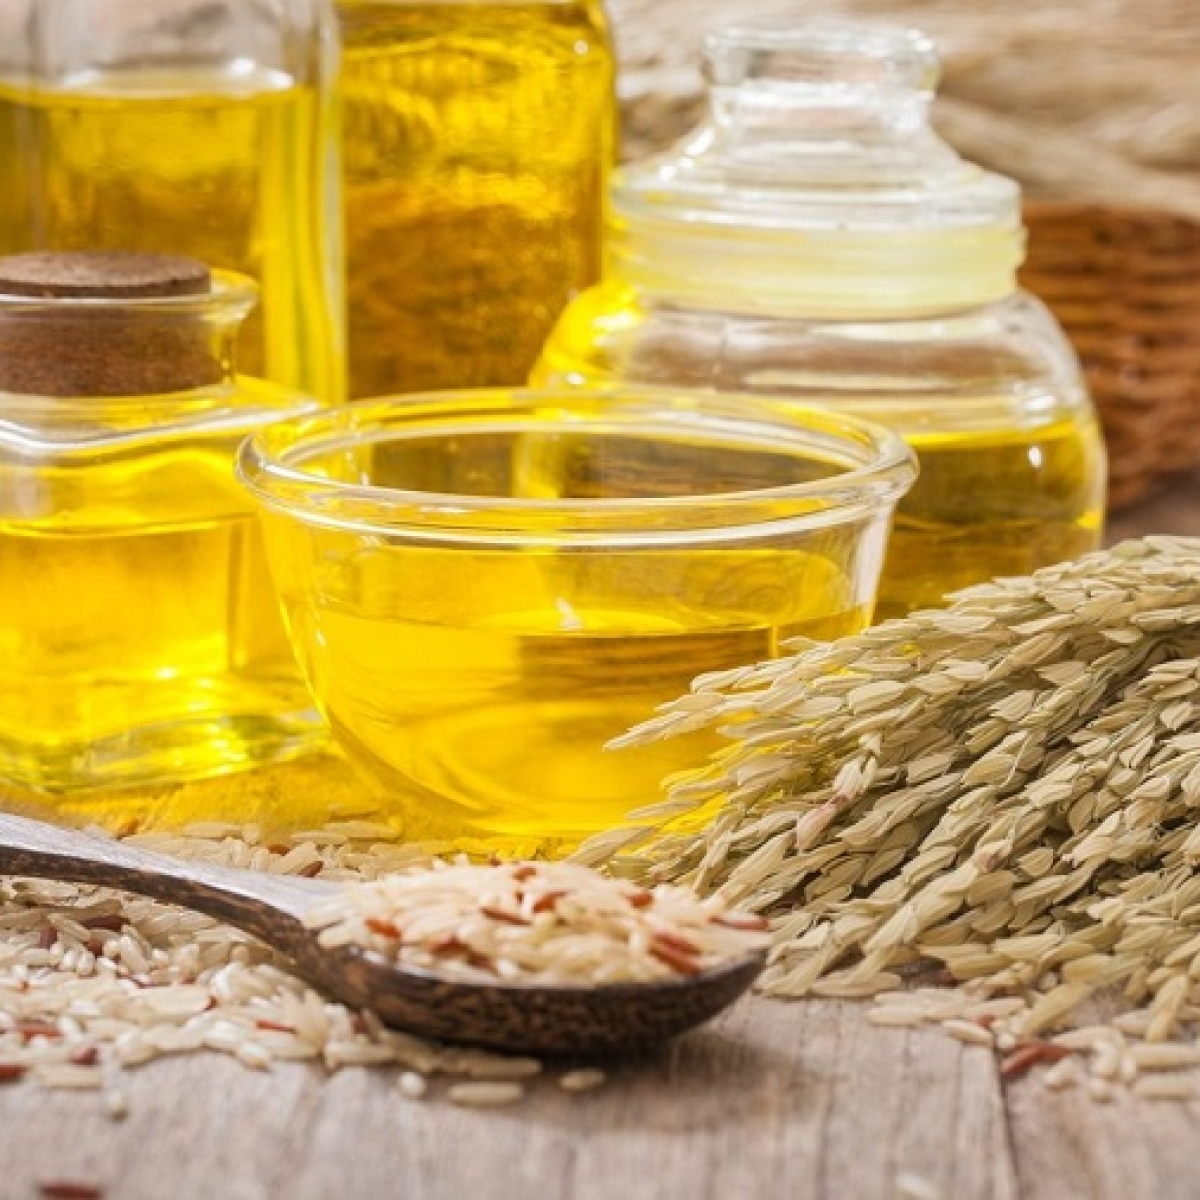 This new natural antioxidants is gaining popularity in India, and can keep heart, cancer diseases at bay